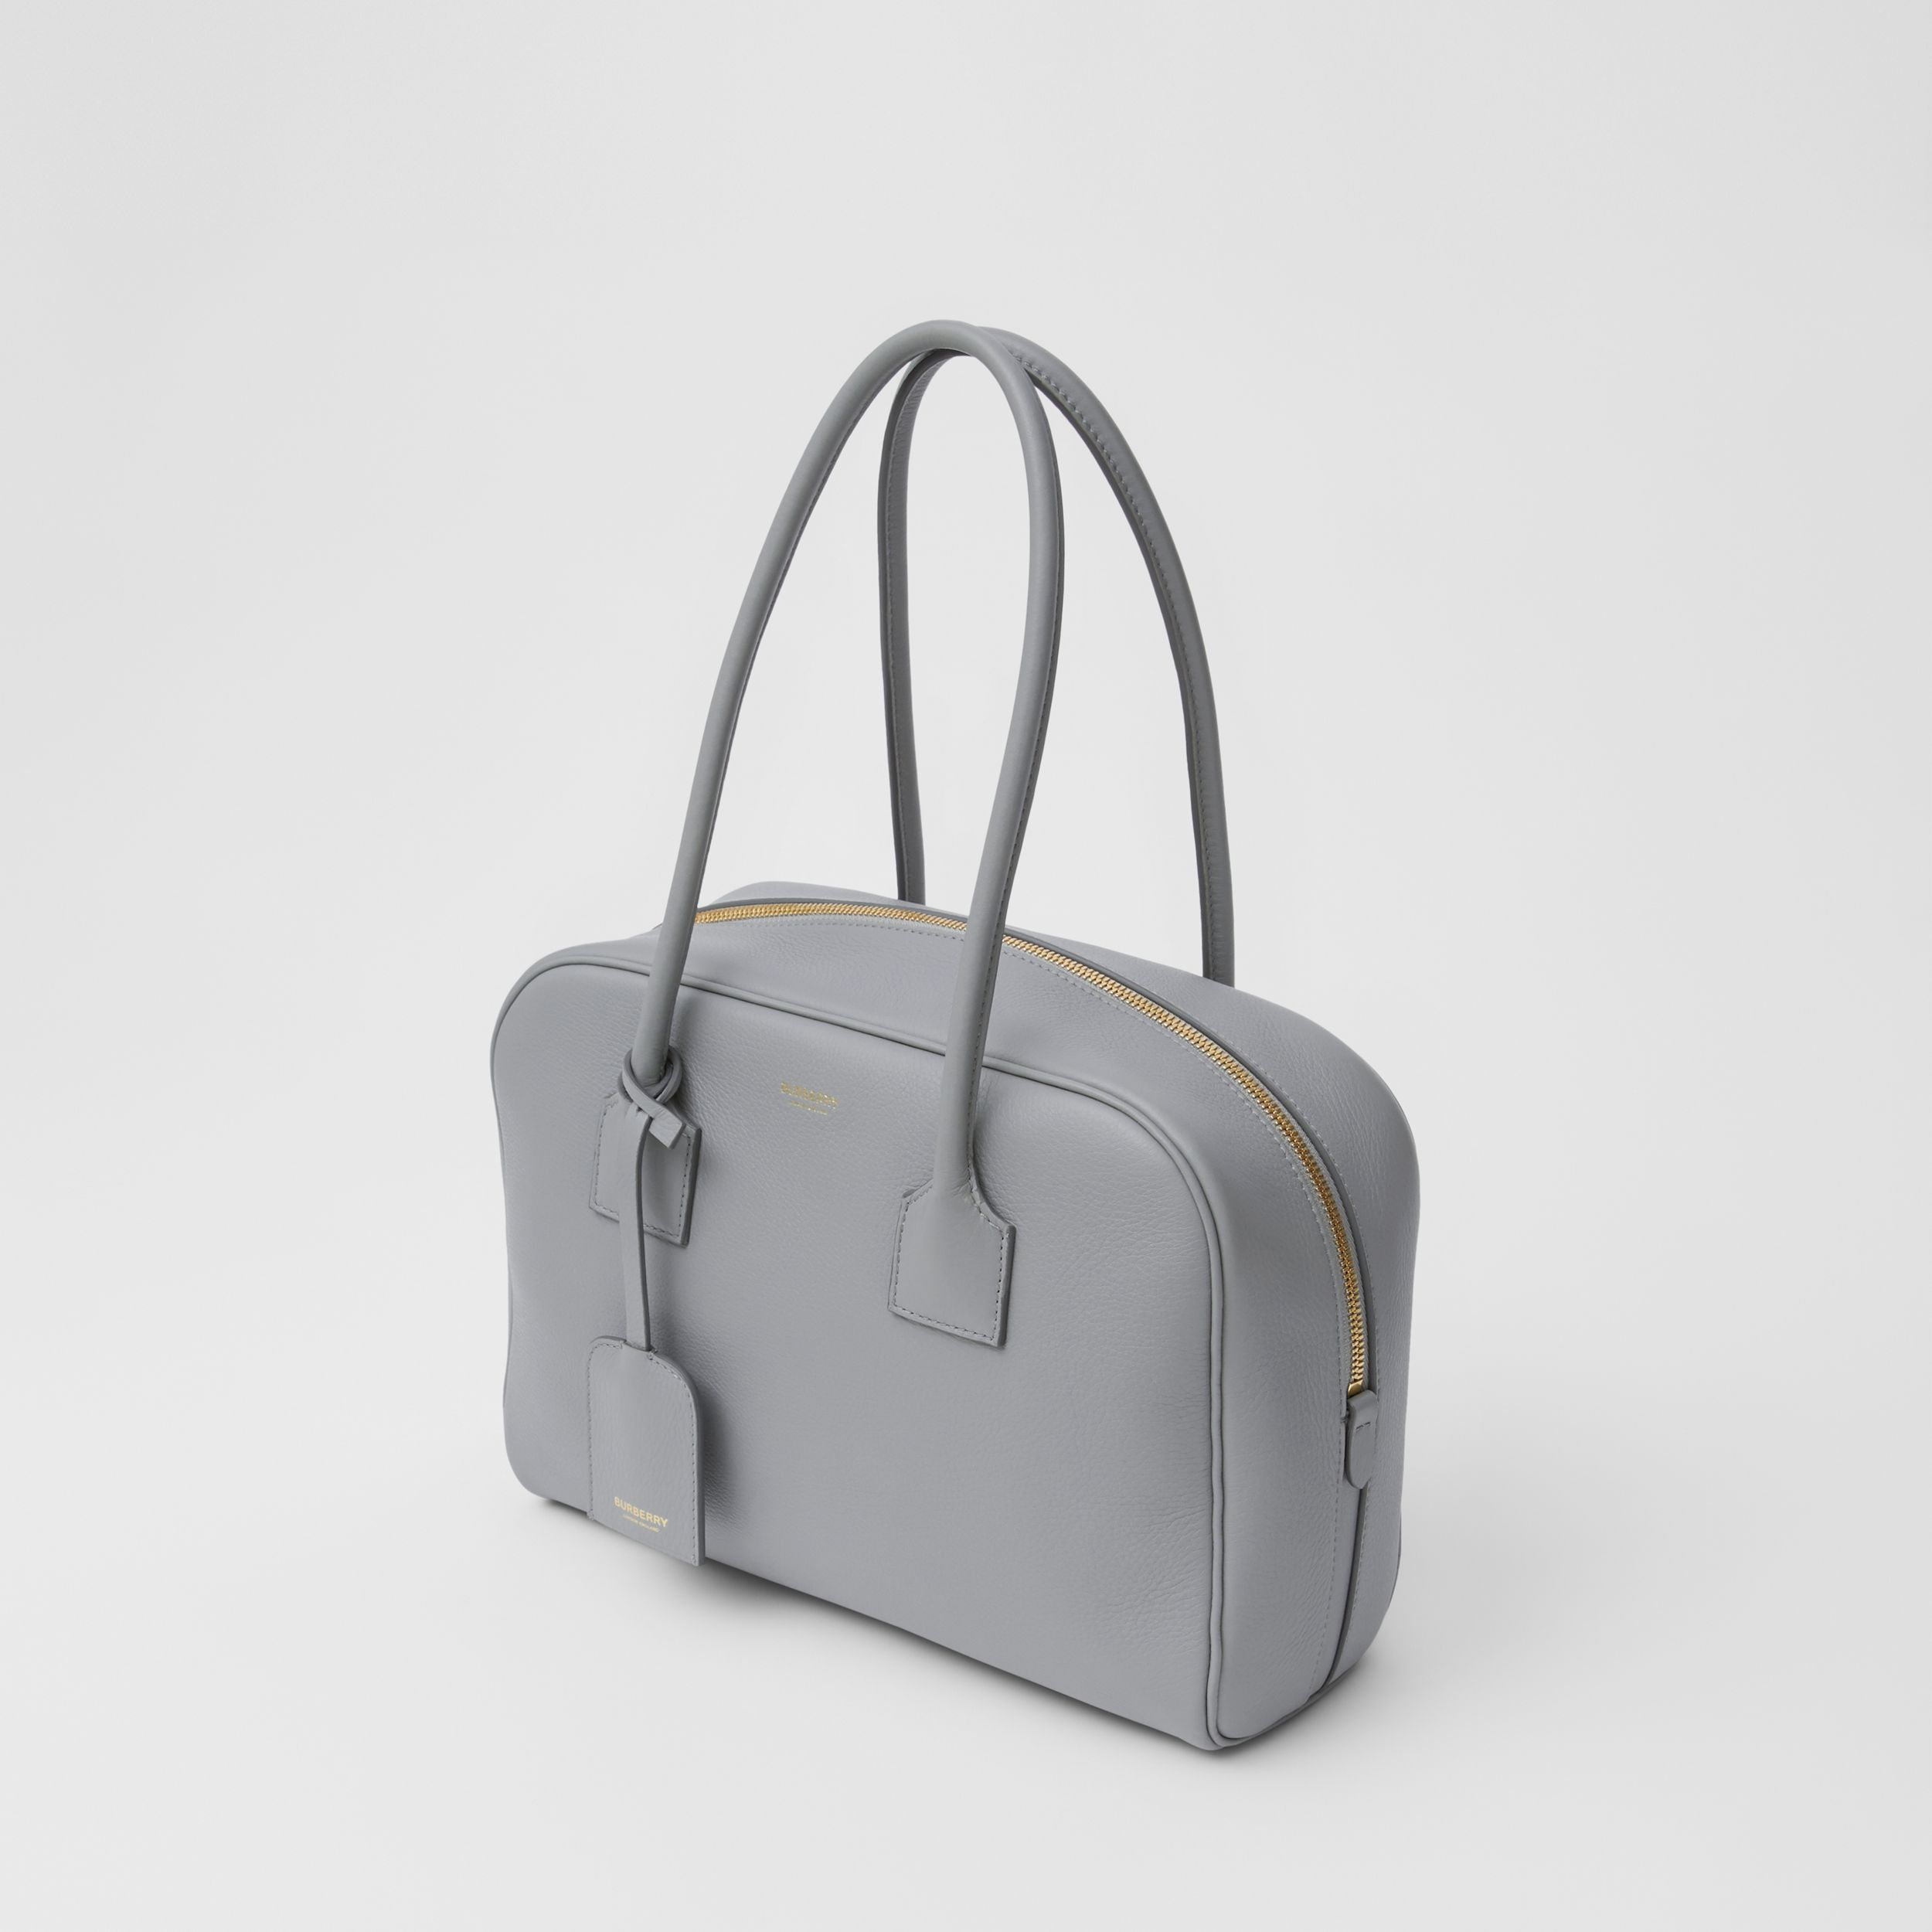 Medium Leather Half Cube Bag in Cloud Grey - Women | Burberry Hong Kong S.A.R. - 4